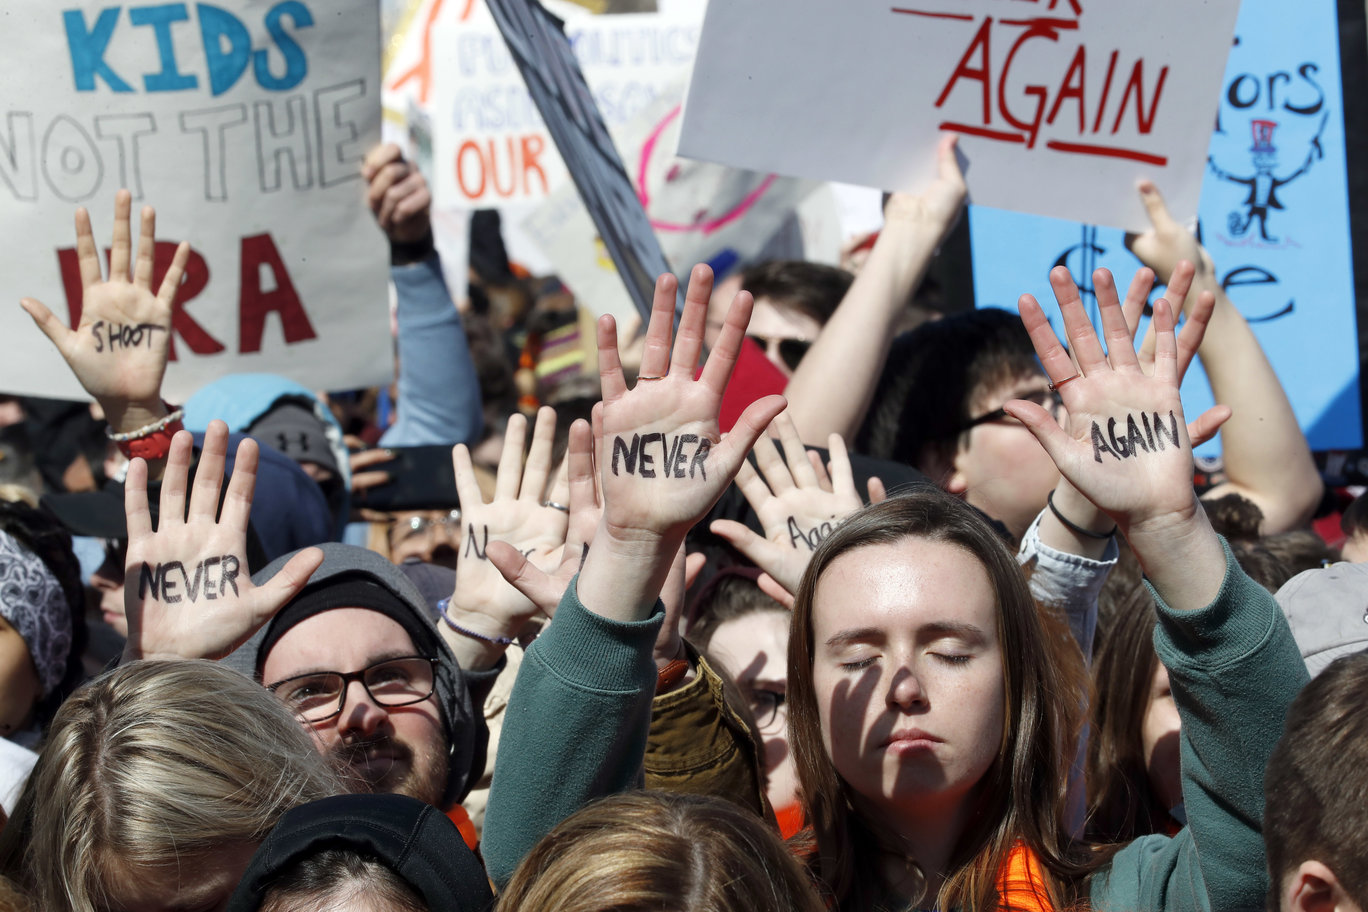 People hold their hands up with messages written on them during the March For Our Lives rally in support of gun control March 24, 2018, in Washington. (AP)